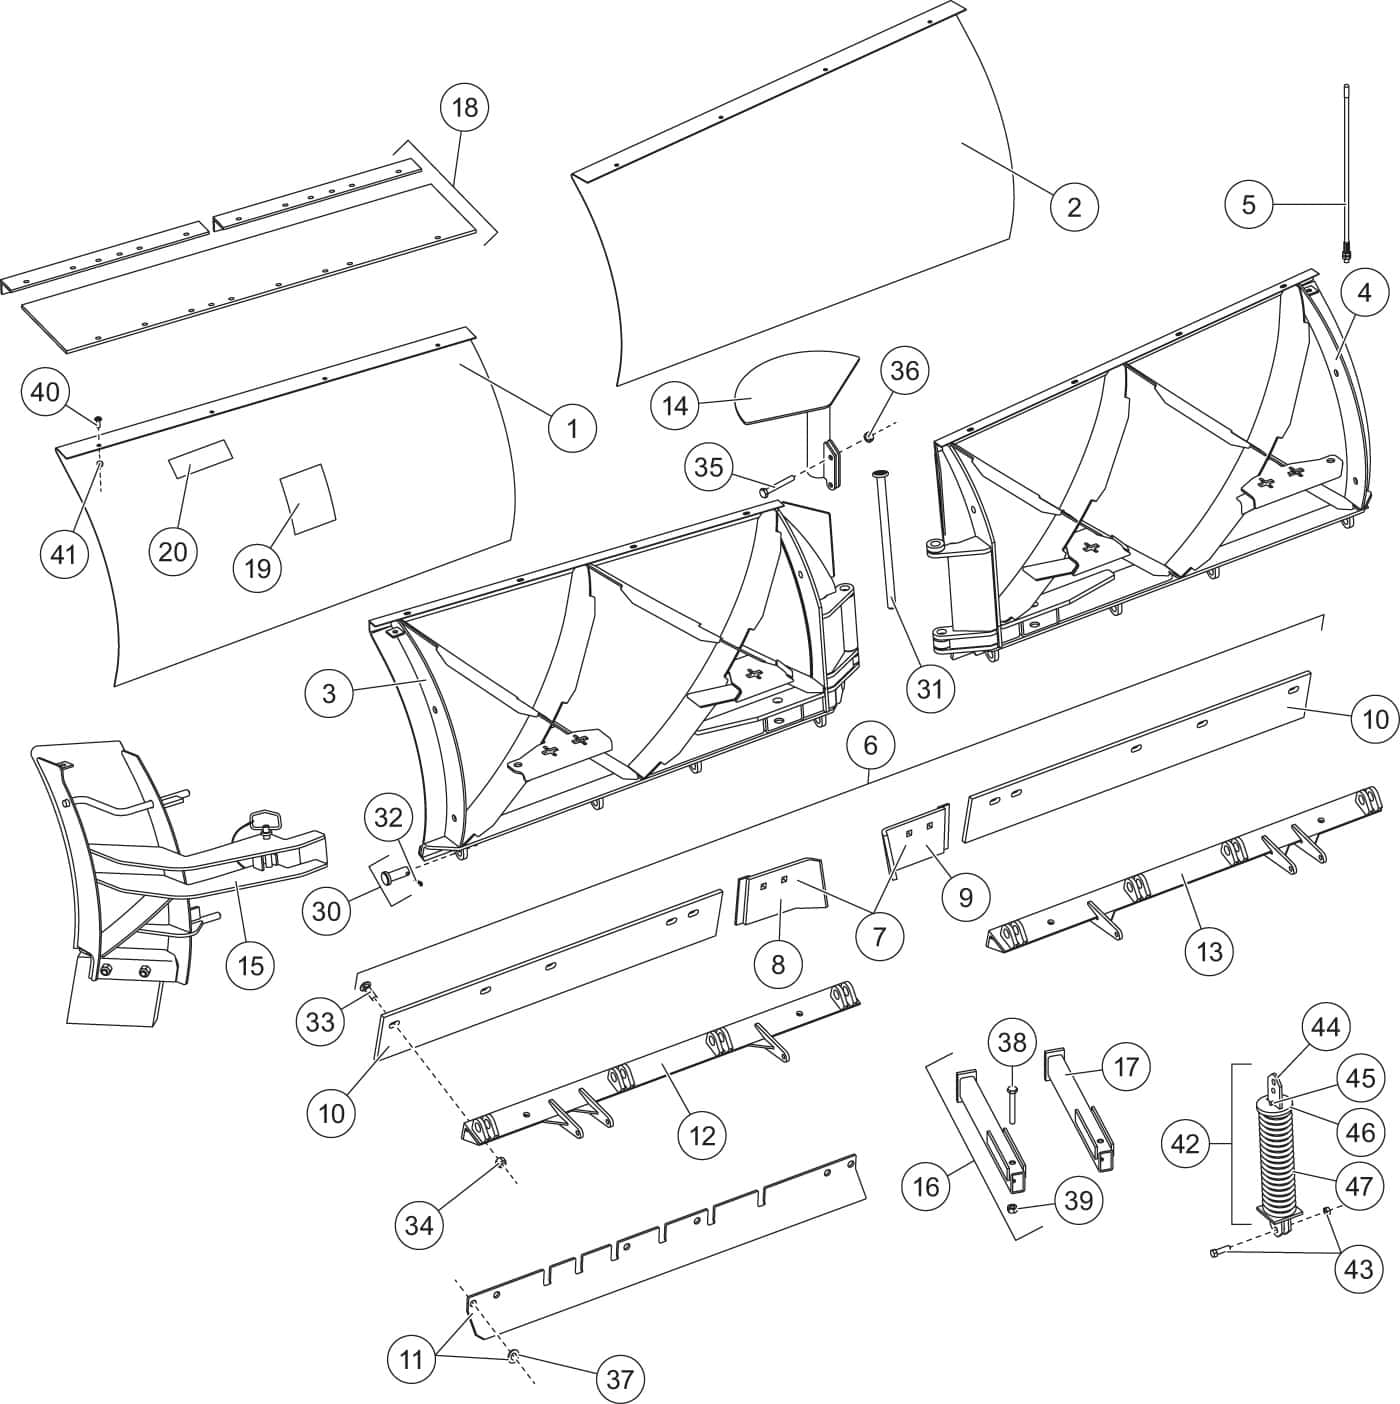 Astonishing fisher snow plow parts diagram gallery best image wire